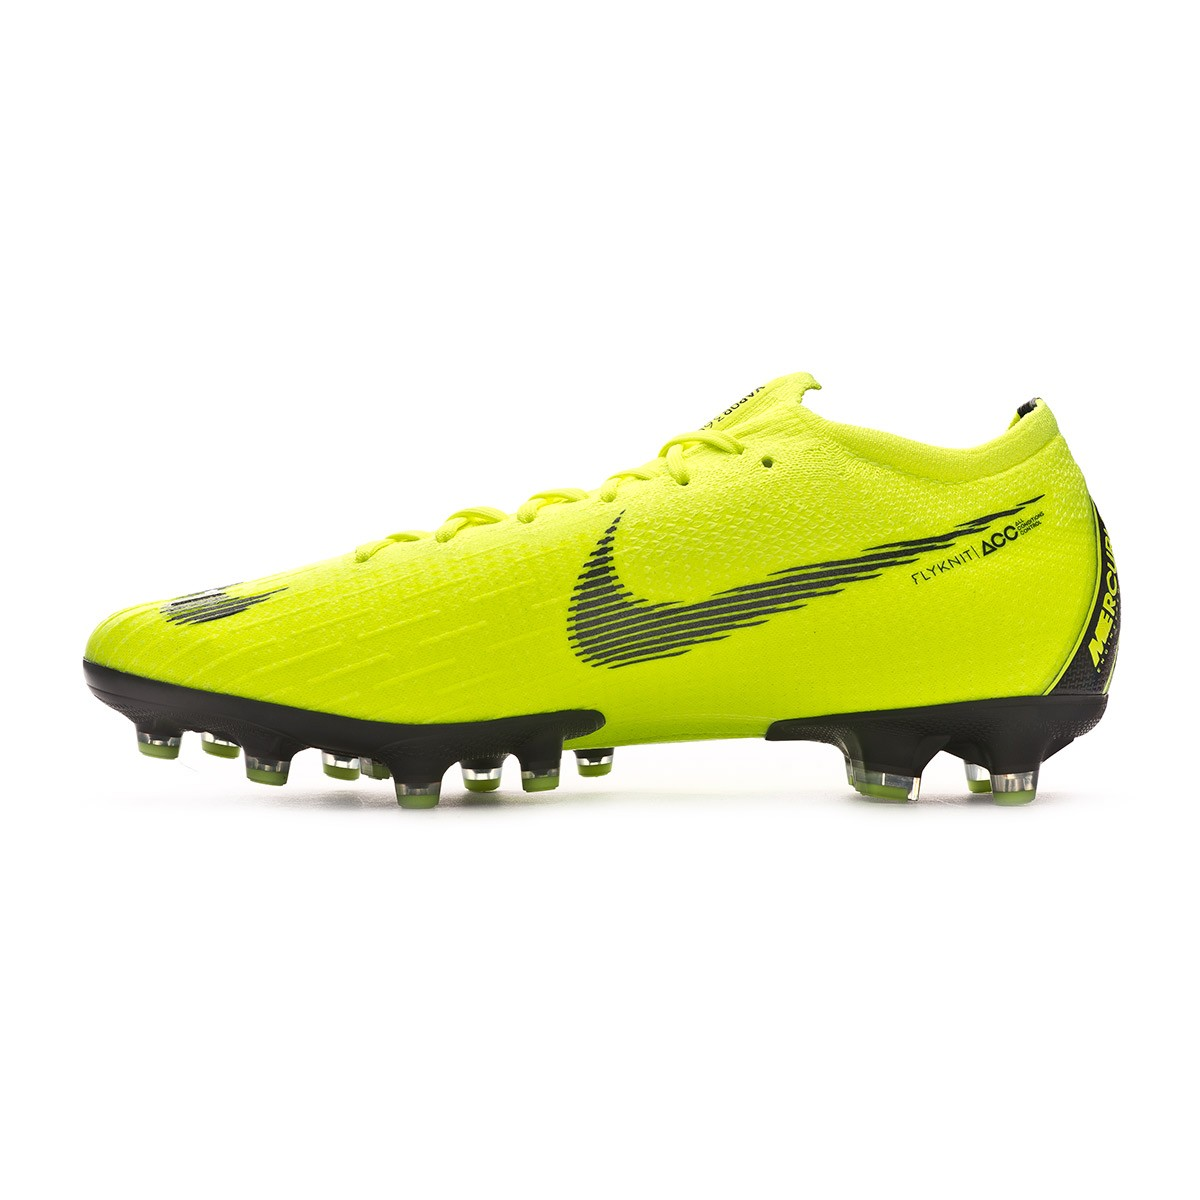 high fashion quality design lace up in Nike Mercurial Vapor XII Elite AG-Pro Football Boots